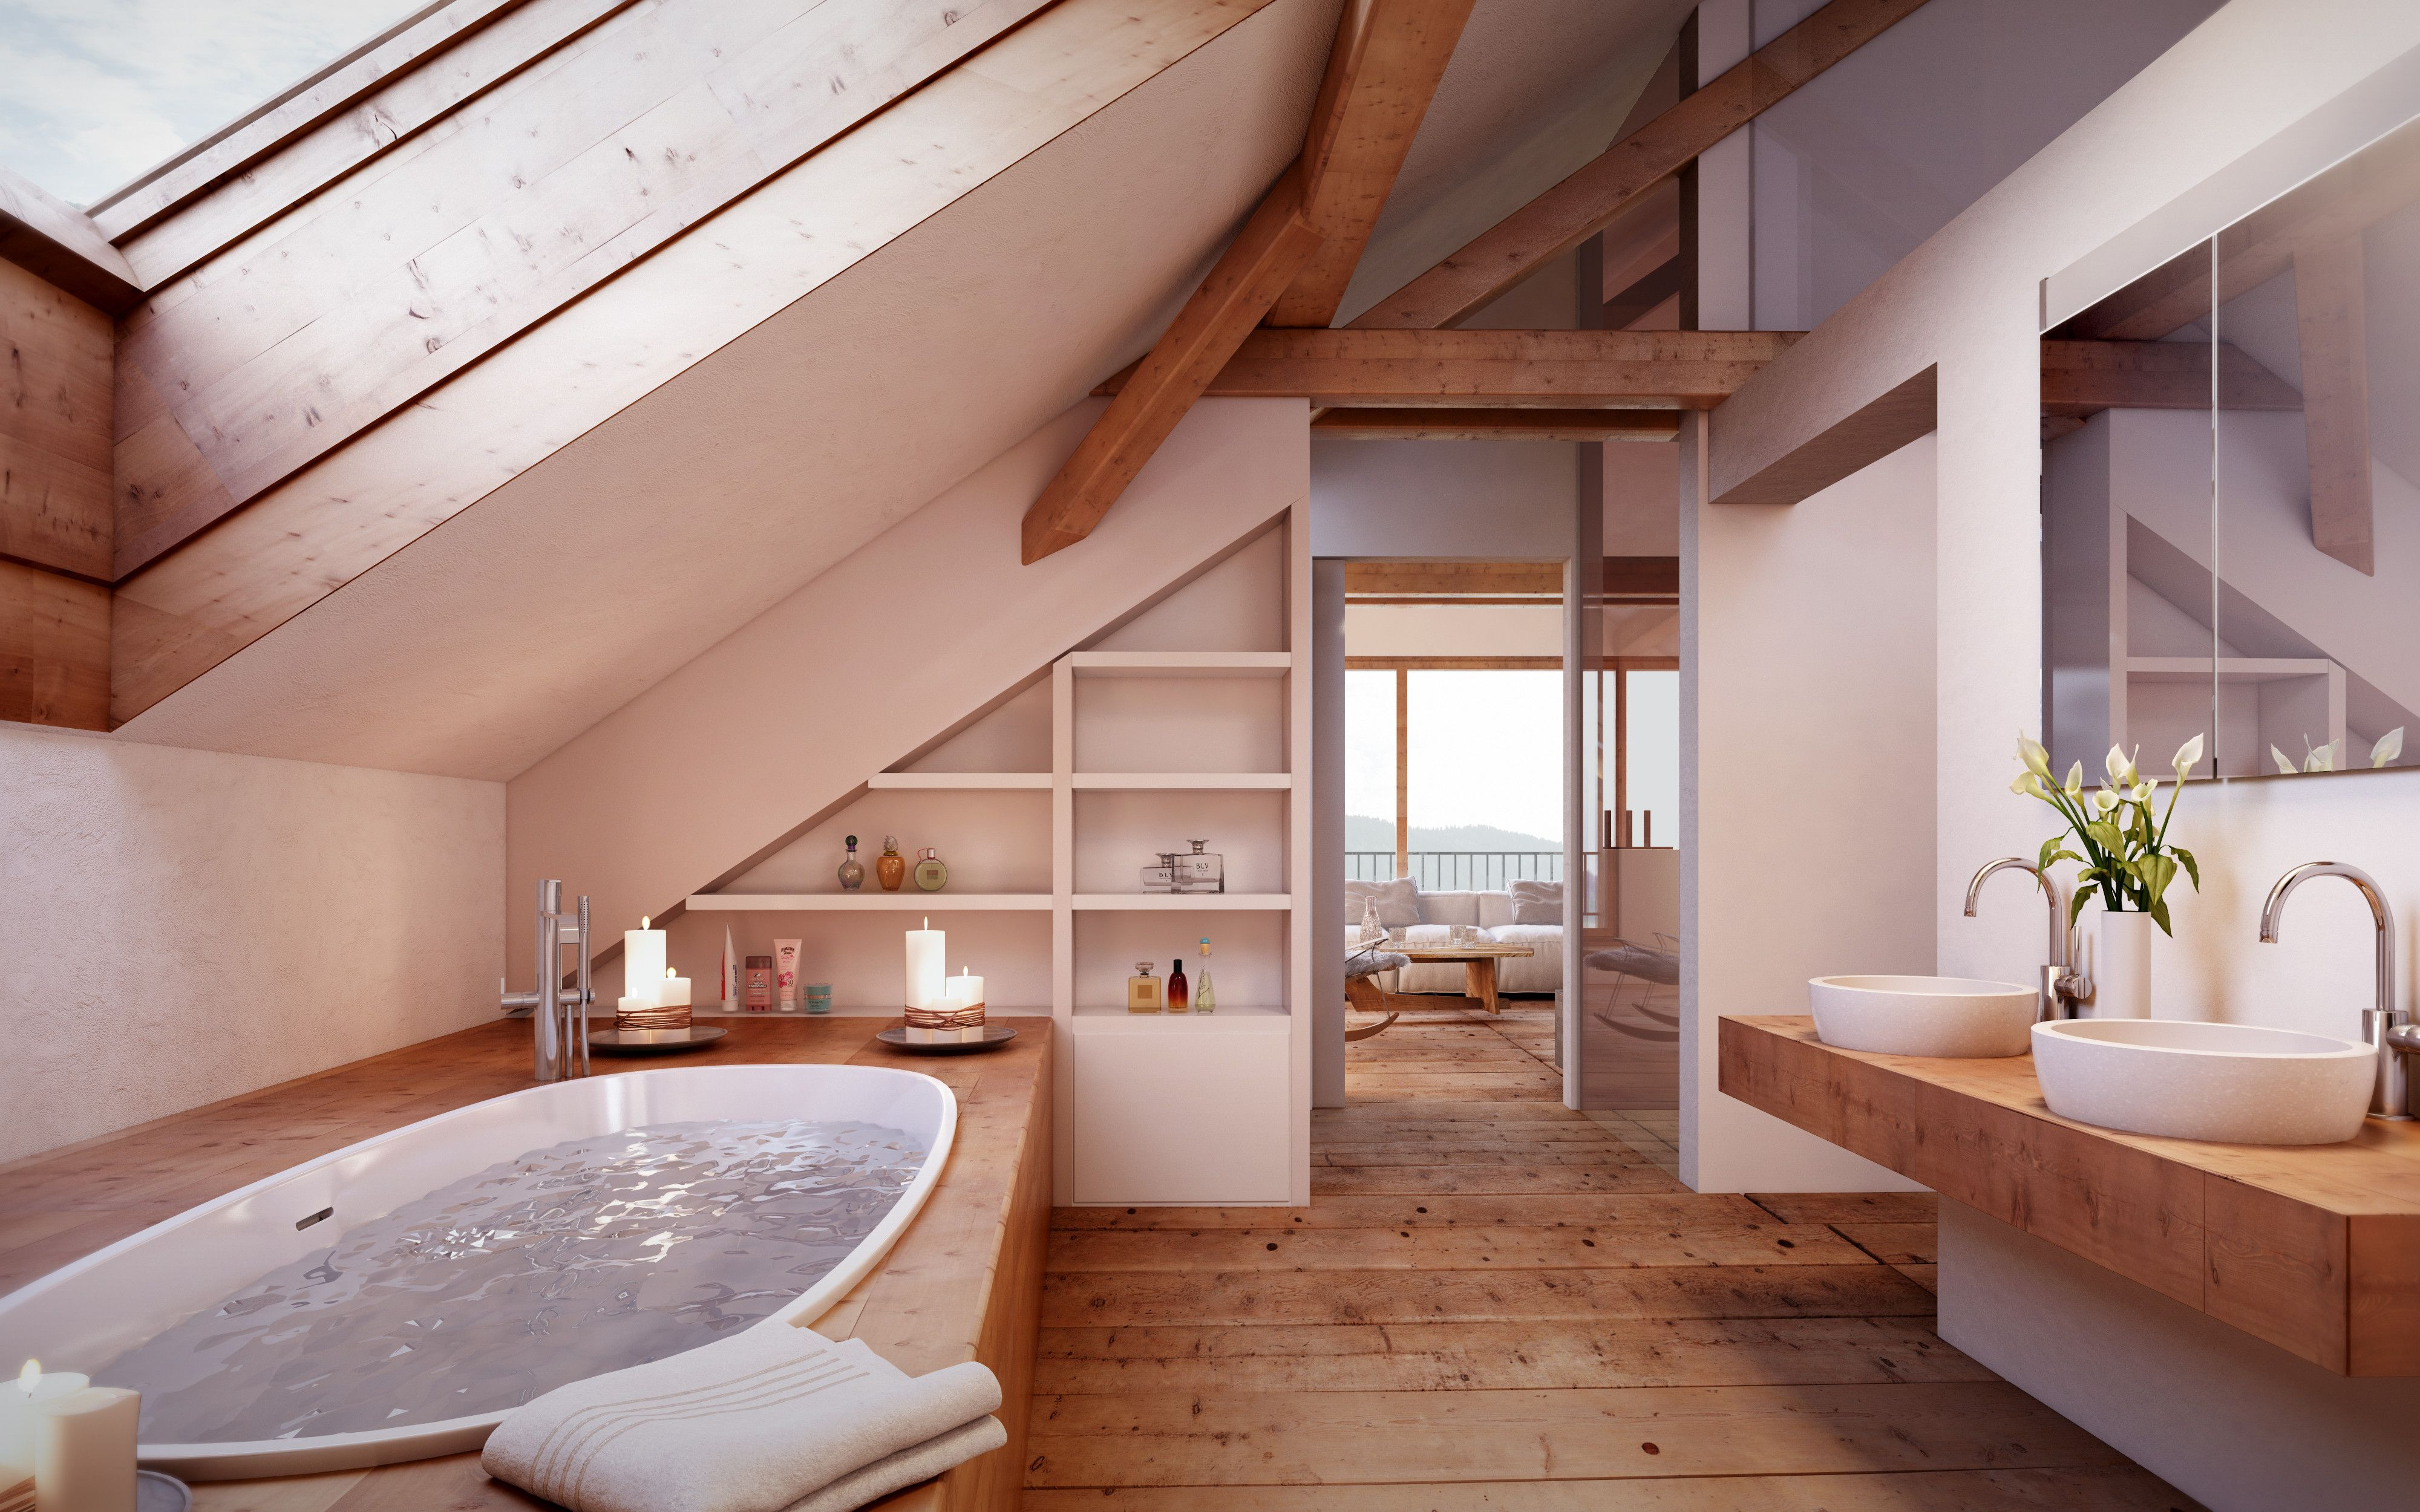 Photo of Rustic attic bathroom under a slanted ceiling in a renovated 19th century apartment by the Rhine River, Switzerland [4000×2500]